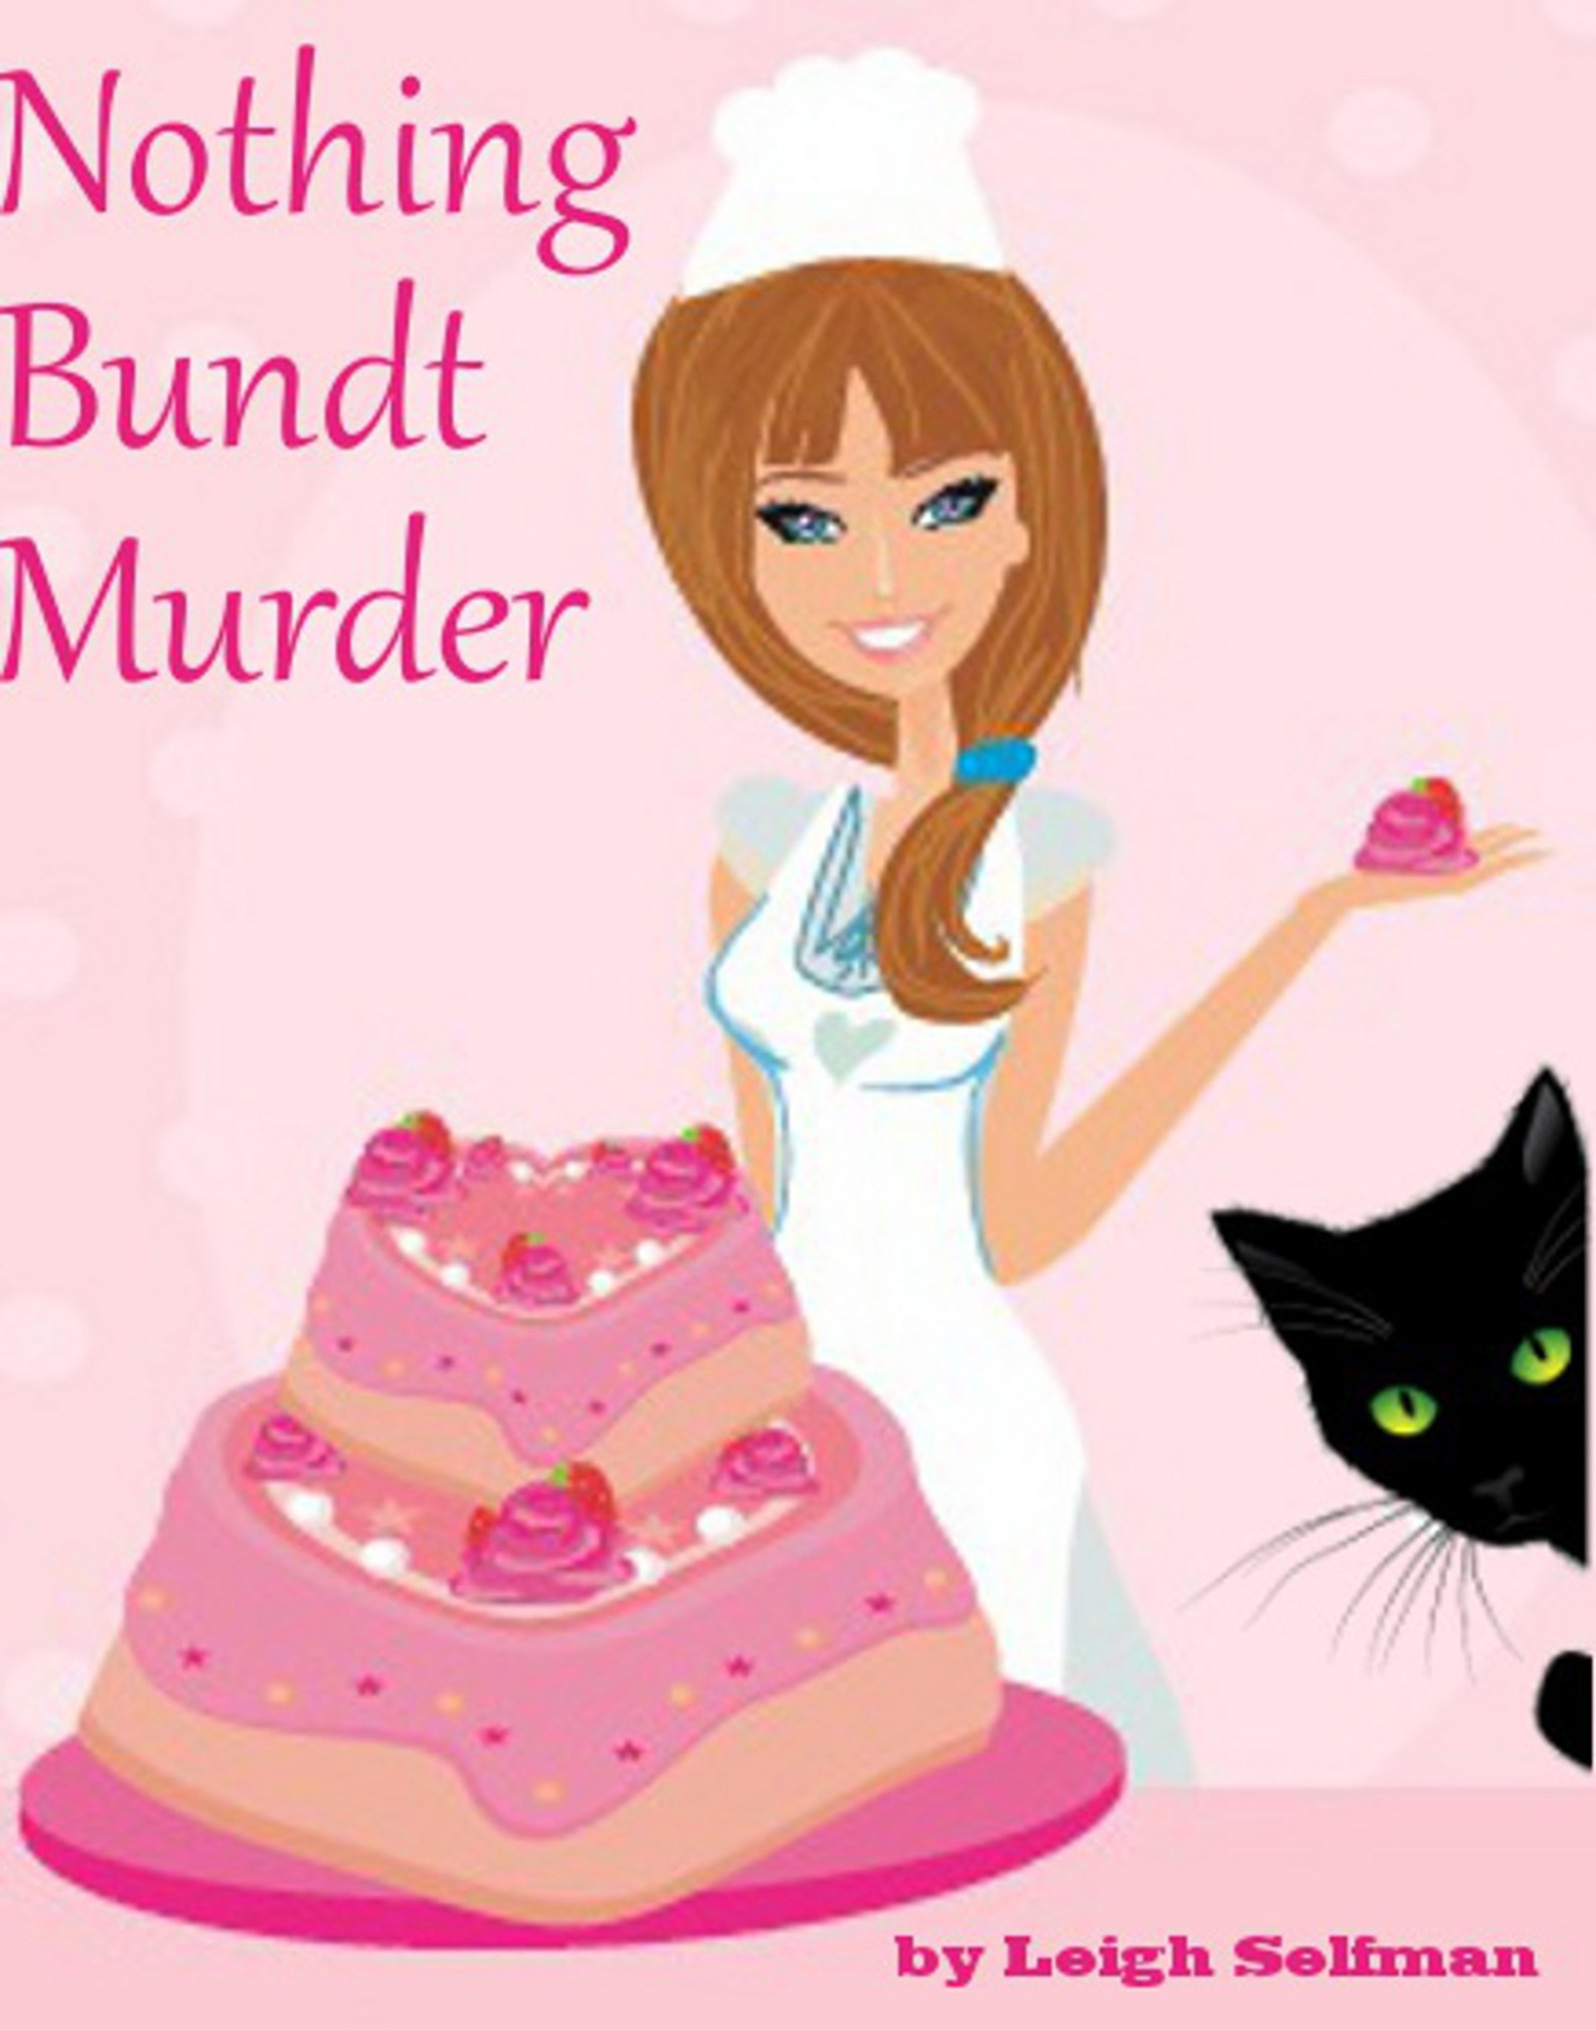 NOTHING BUNDT MURDER